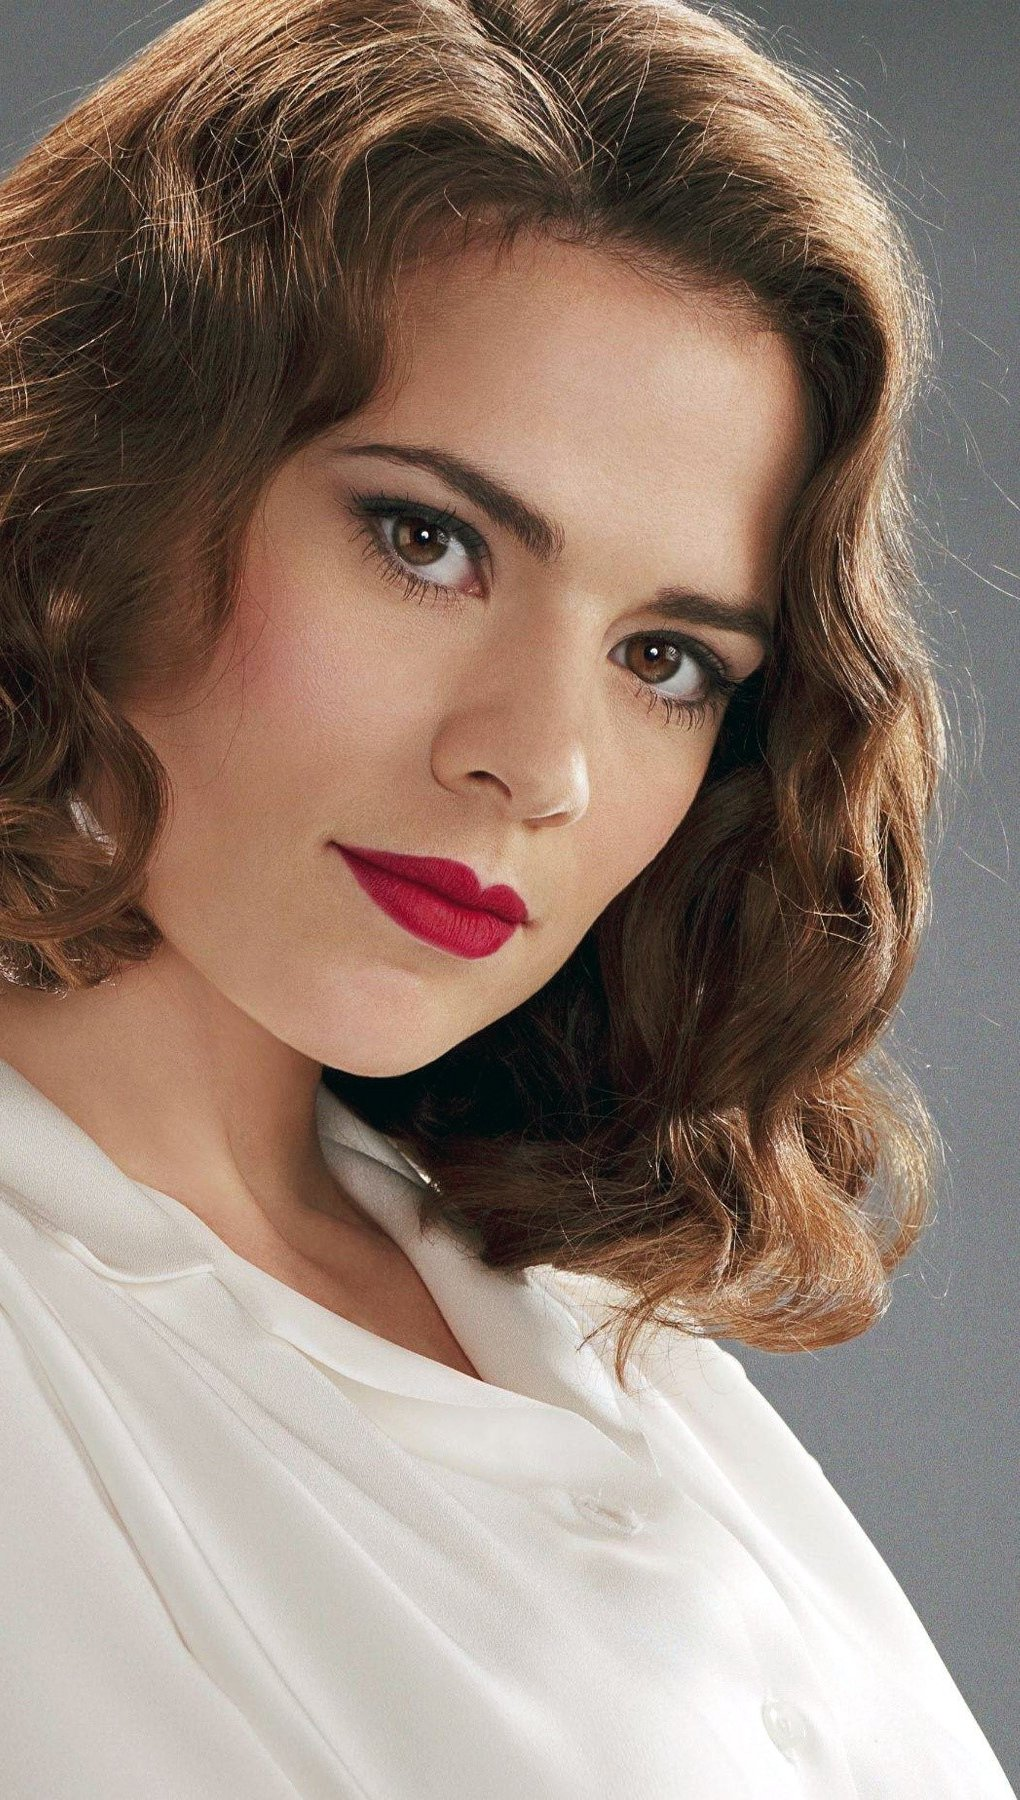 Wallpaper Hayley Atwell as Peggy Carter Vertical